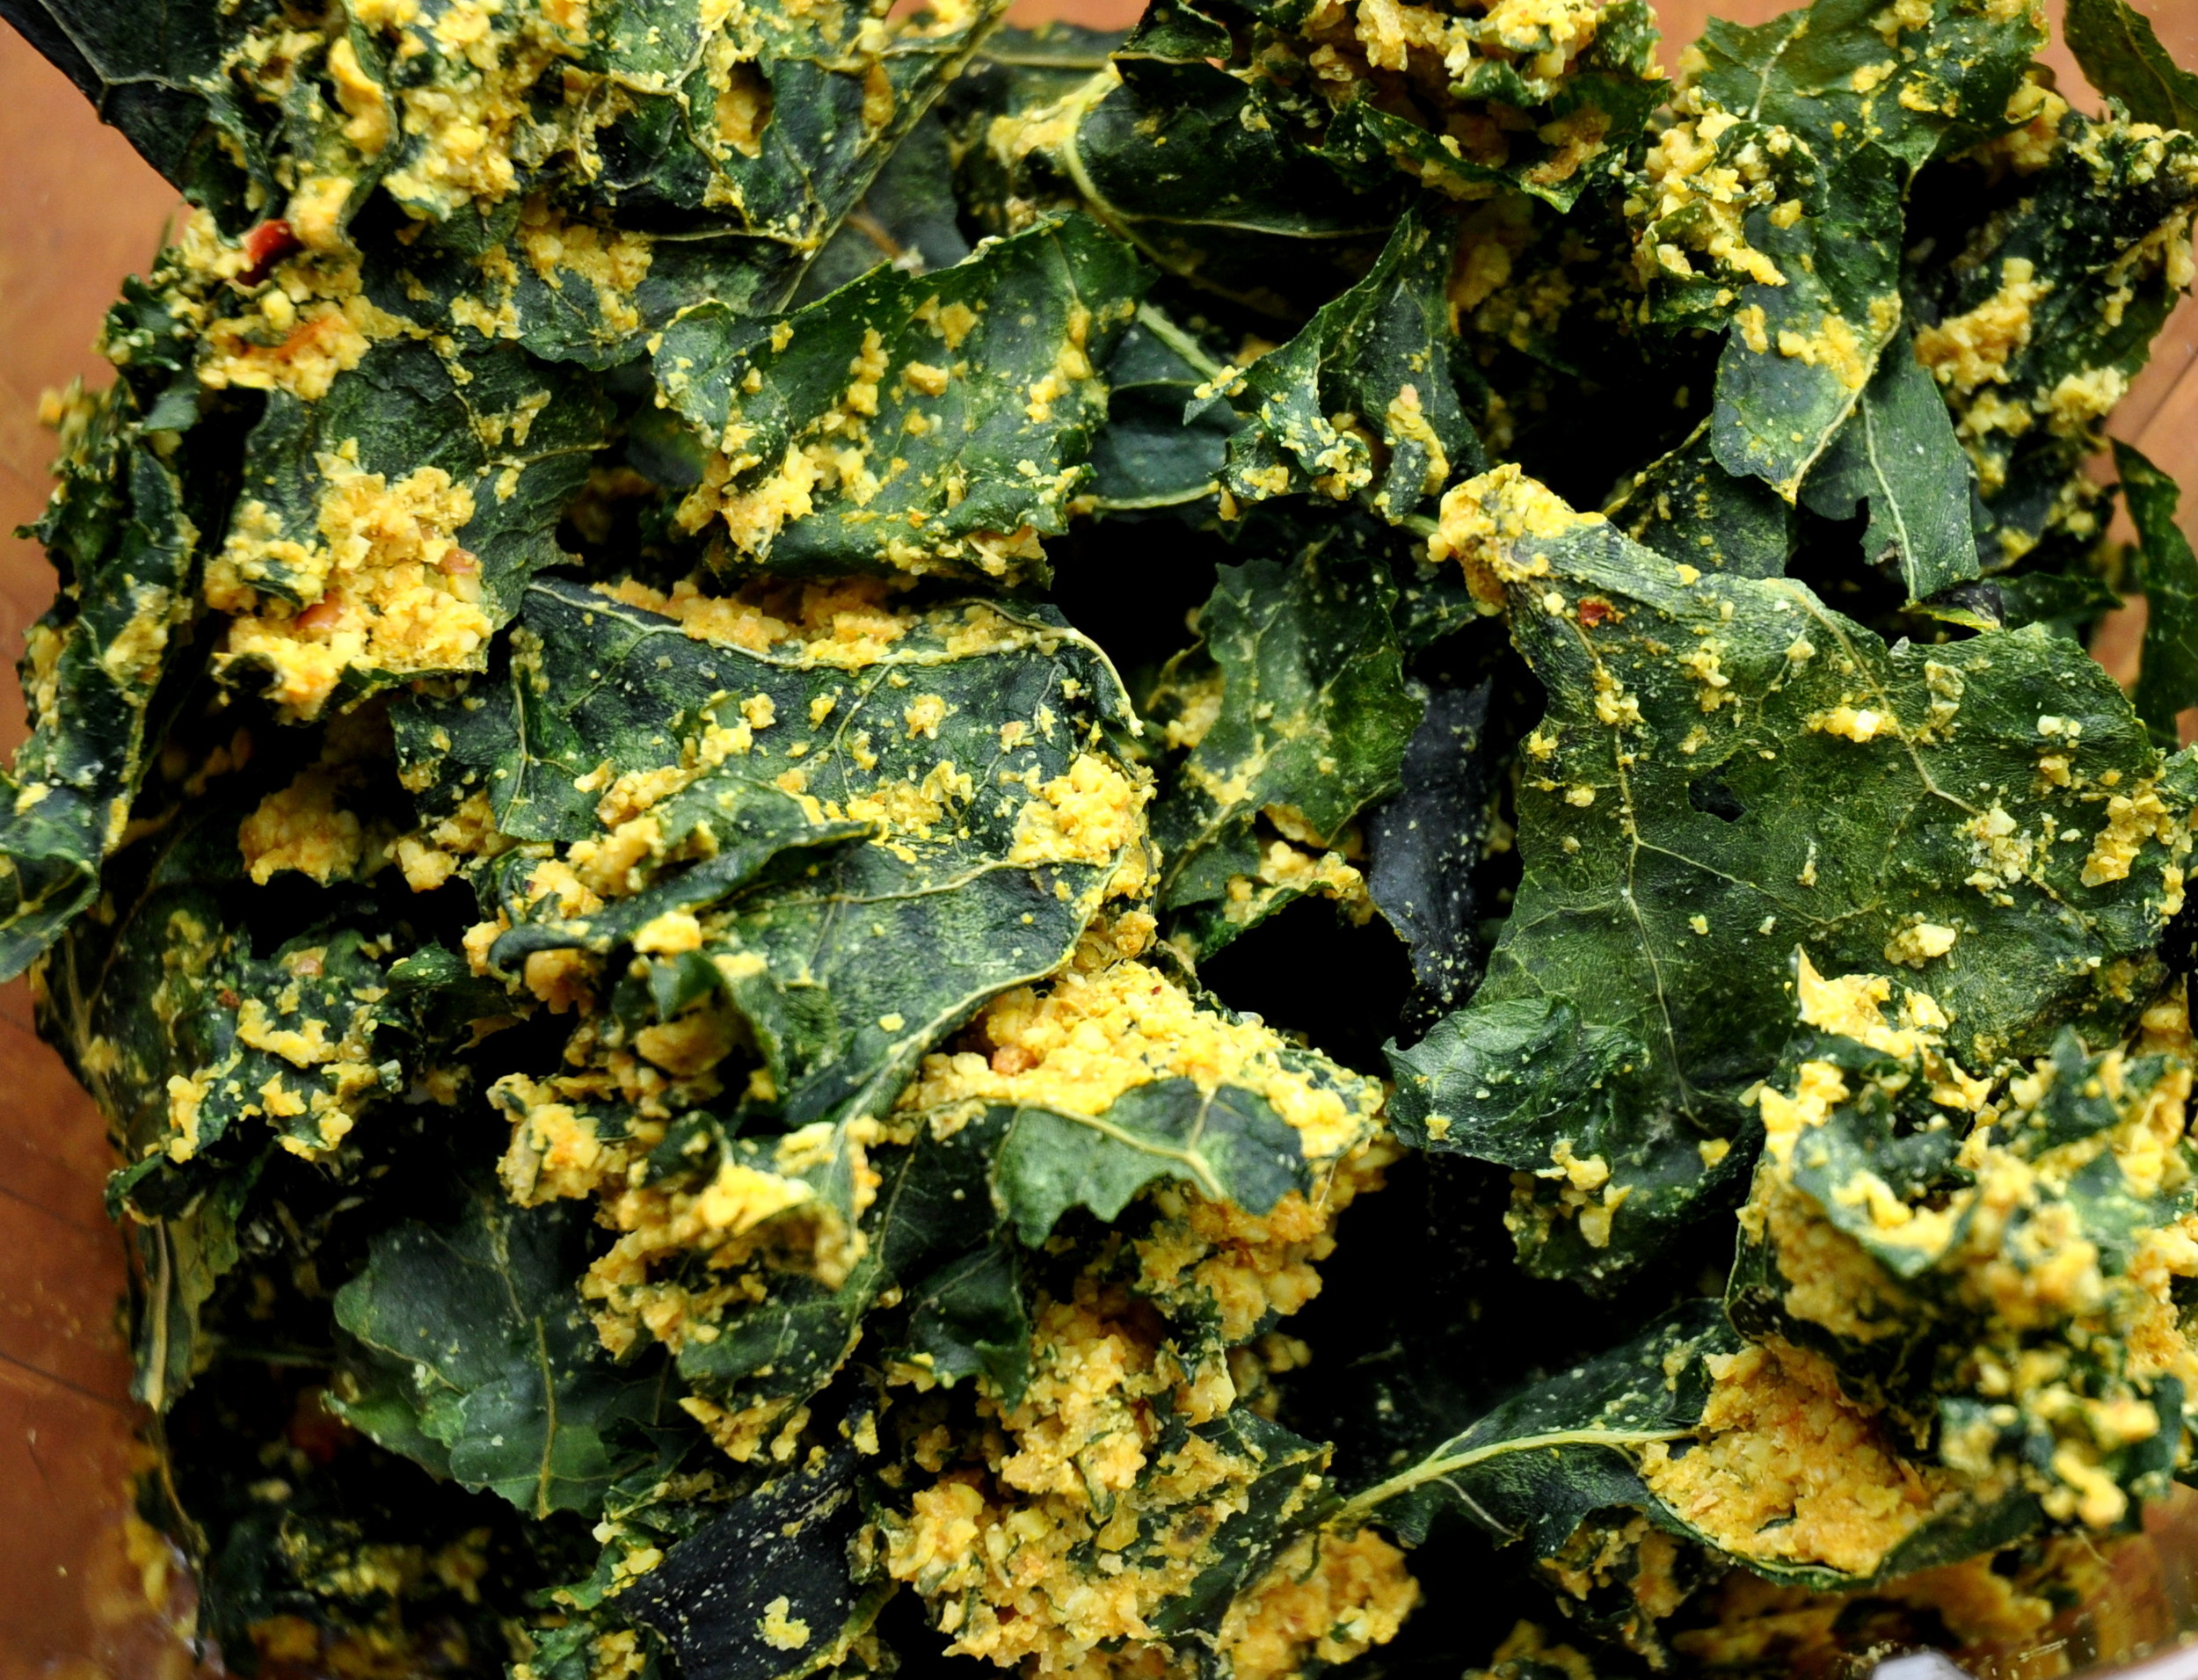 Coconut Curry Kale Chips from House of the Sun. Photo copyright 2013 by Zachary D. Lyons.